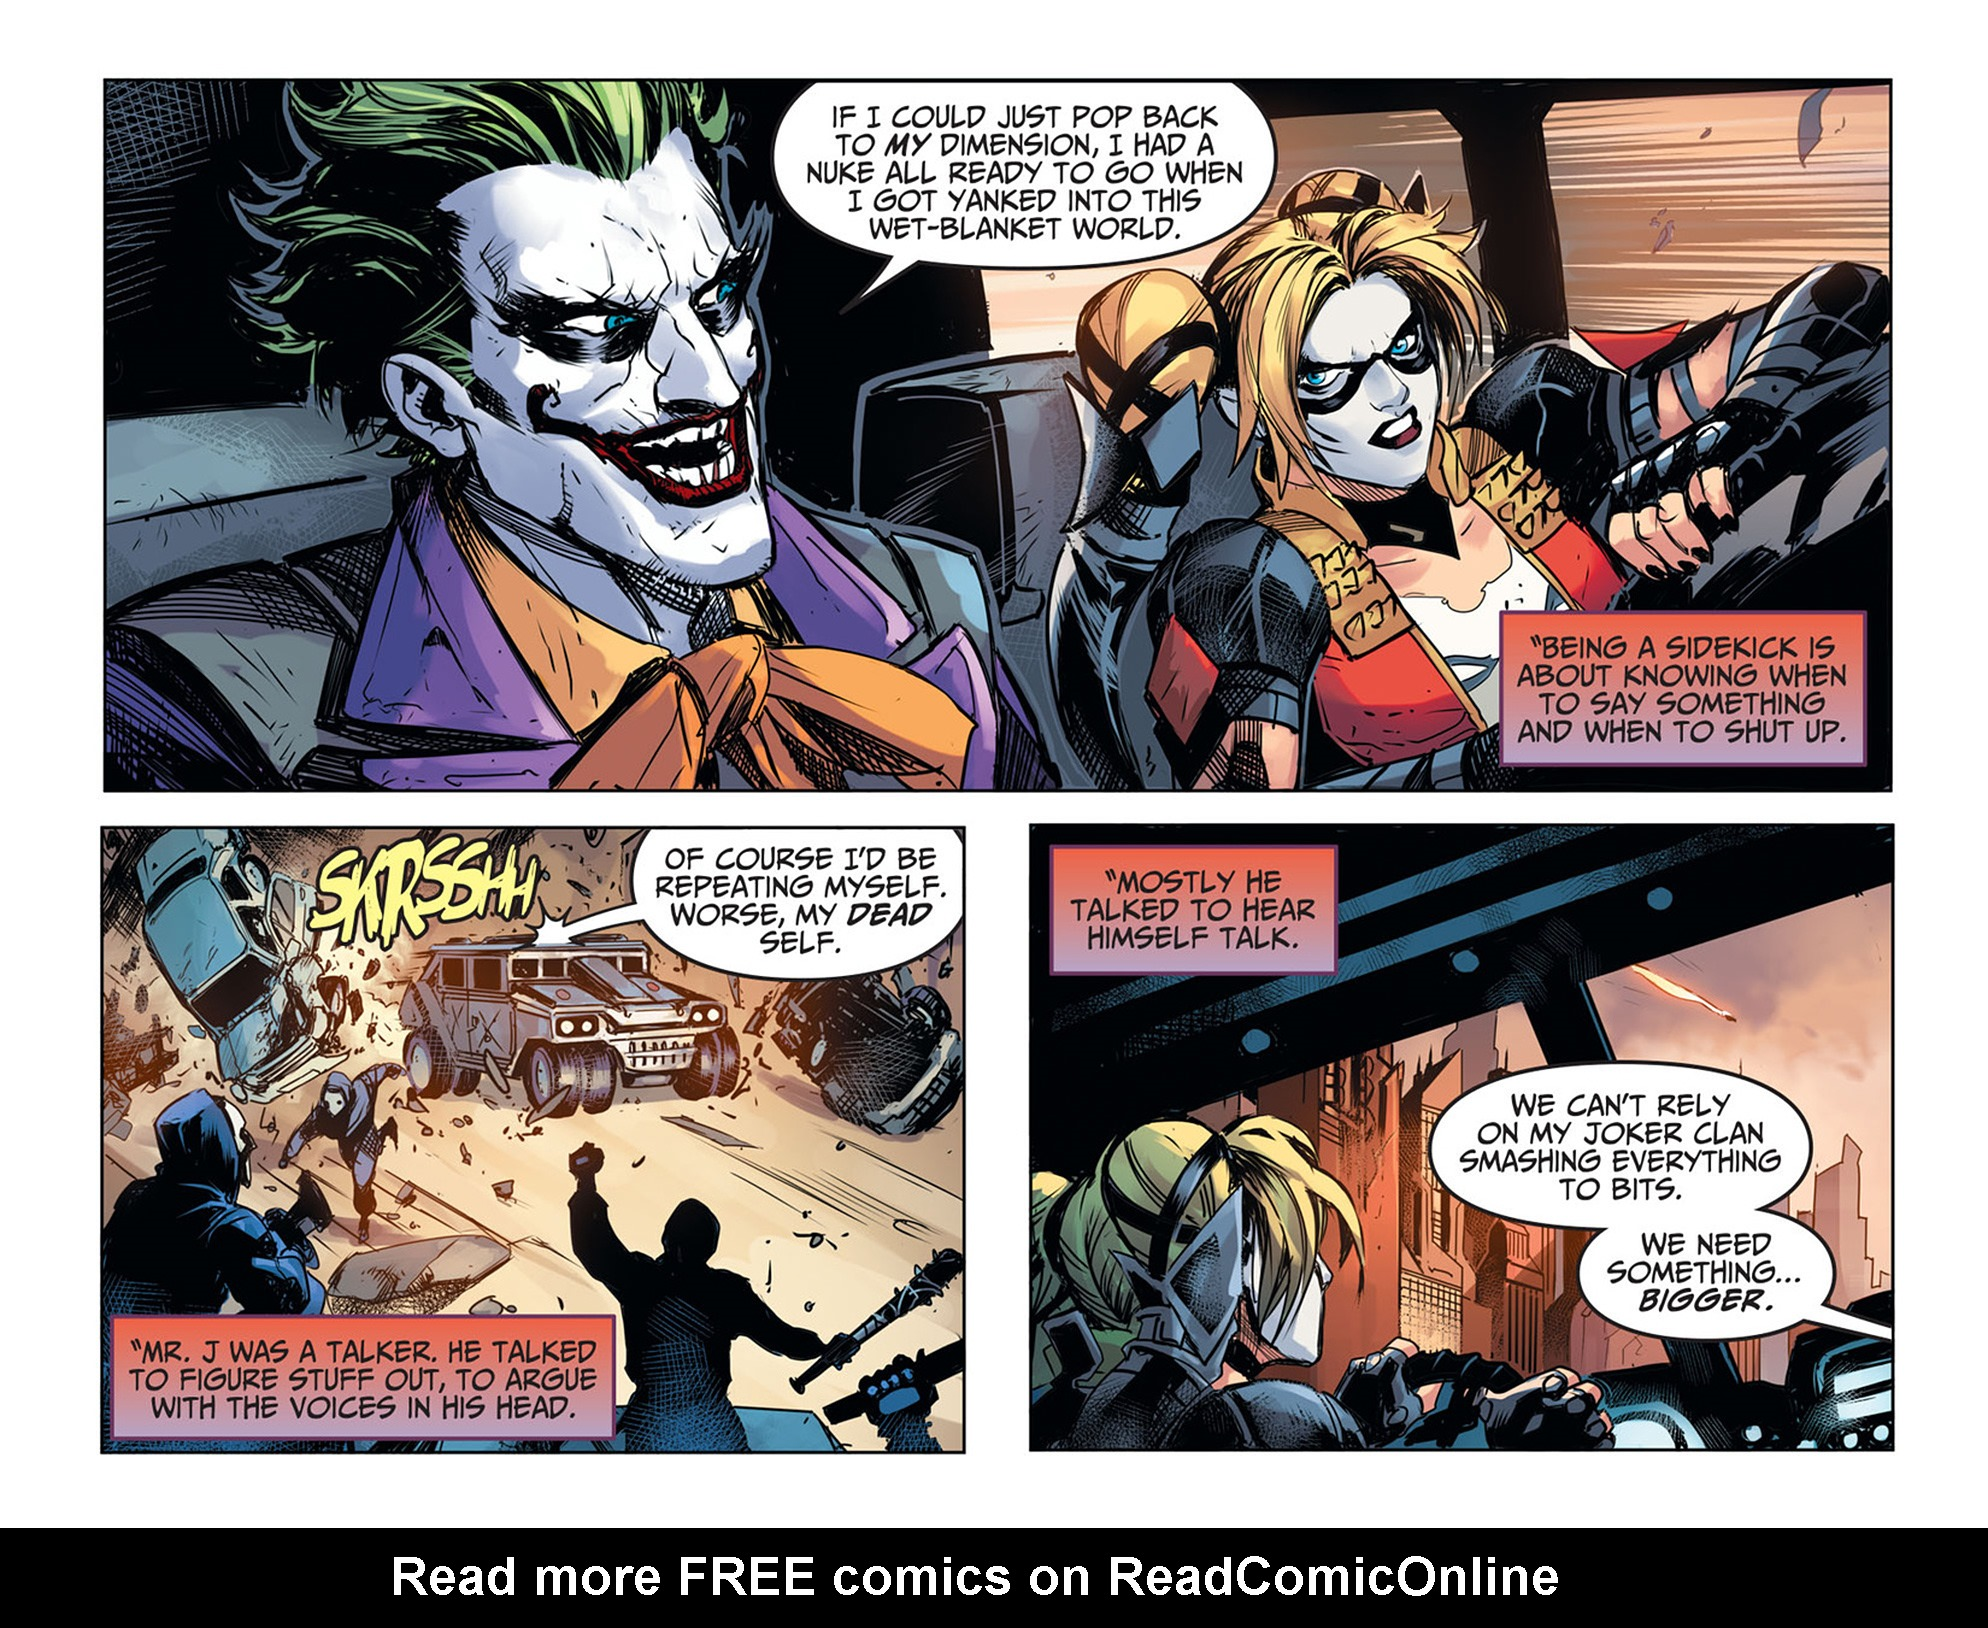 Read online Injustice: Ground Zero comic -  Issue #19 - 4